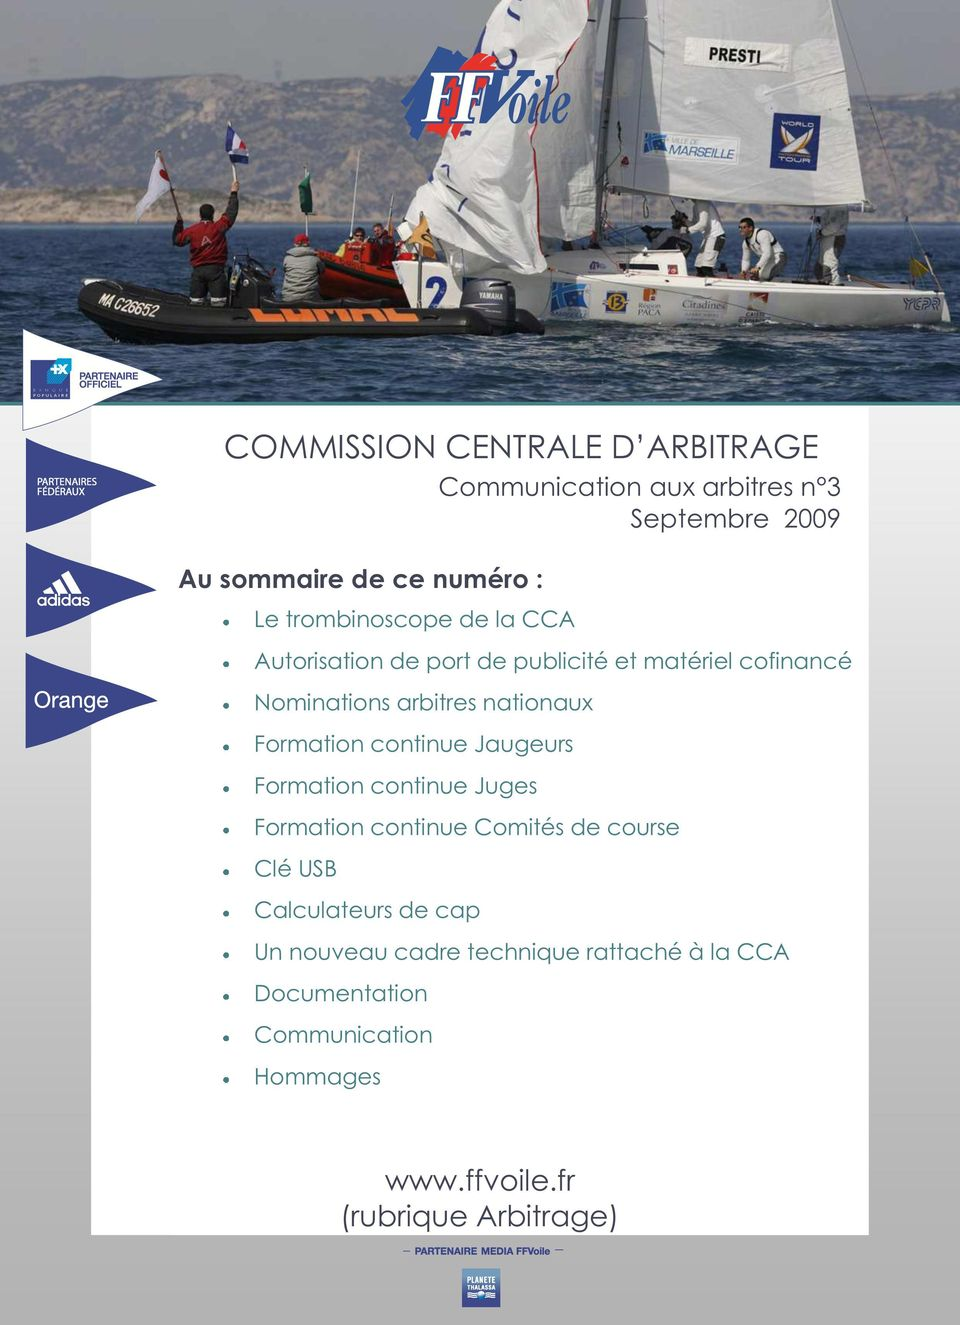 Formation continue Jaugeurs Formation continue Juges Formation continue Comités de course Clé USB Calculateurs de